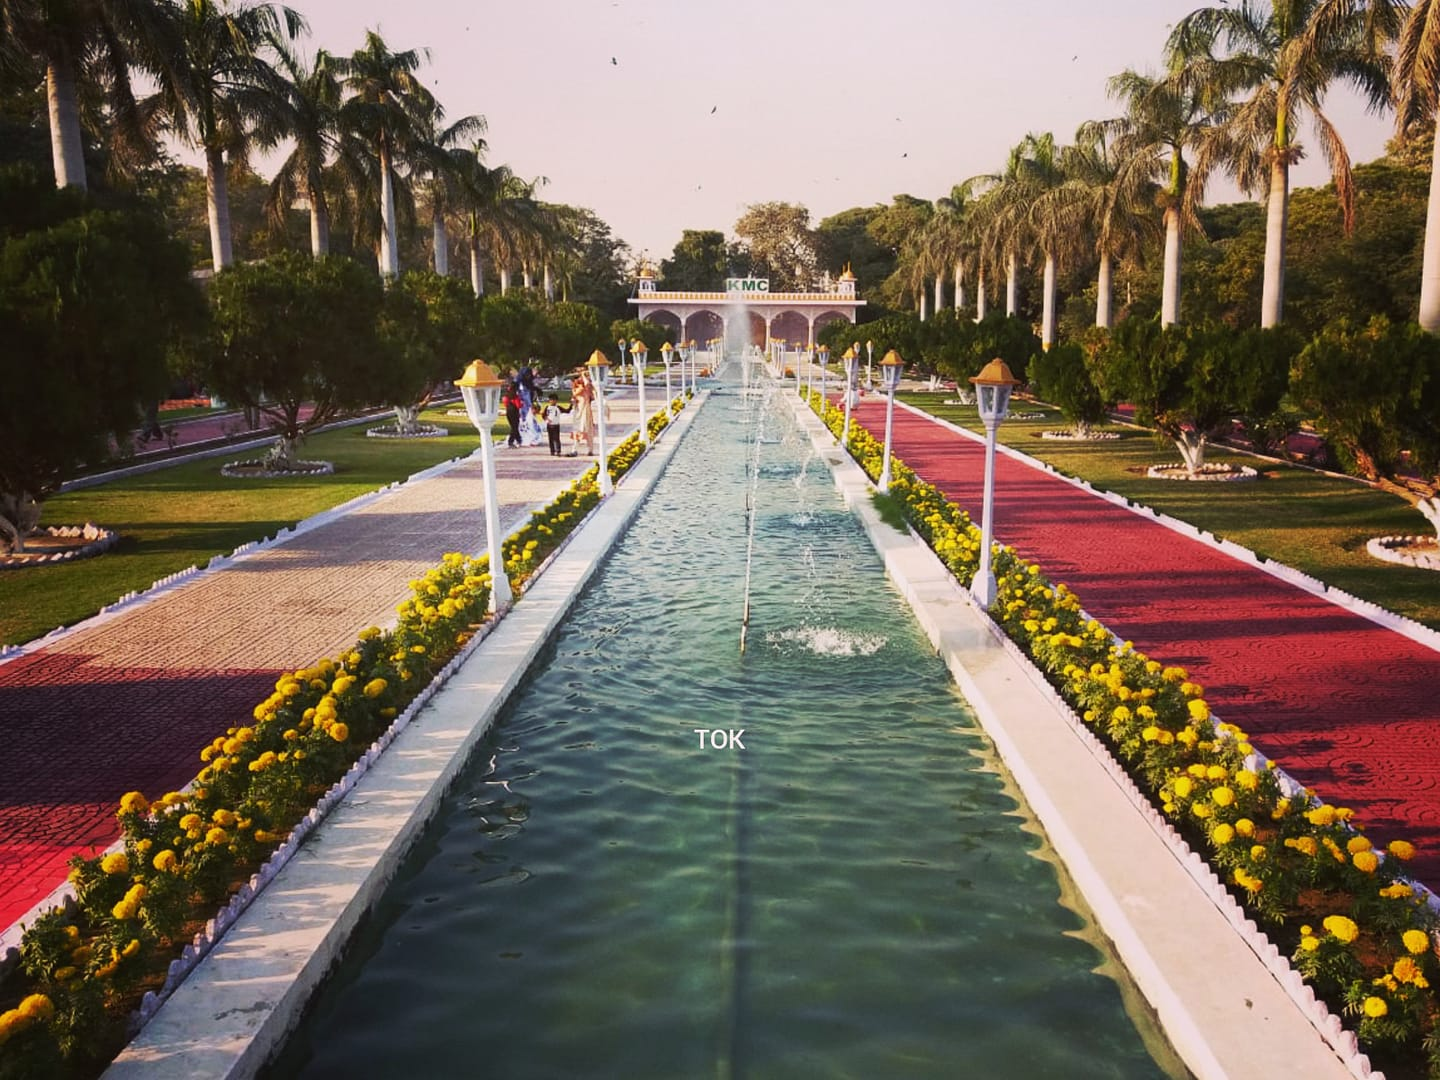 Mayor Karachi Wasim Akhtar Inaugurated The Newly Renovated Mughal Garden In Karachi Zoo